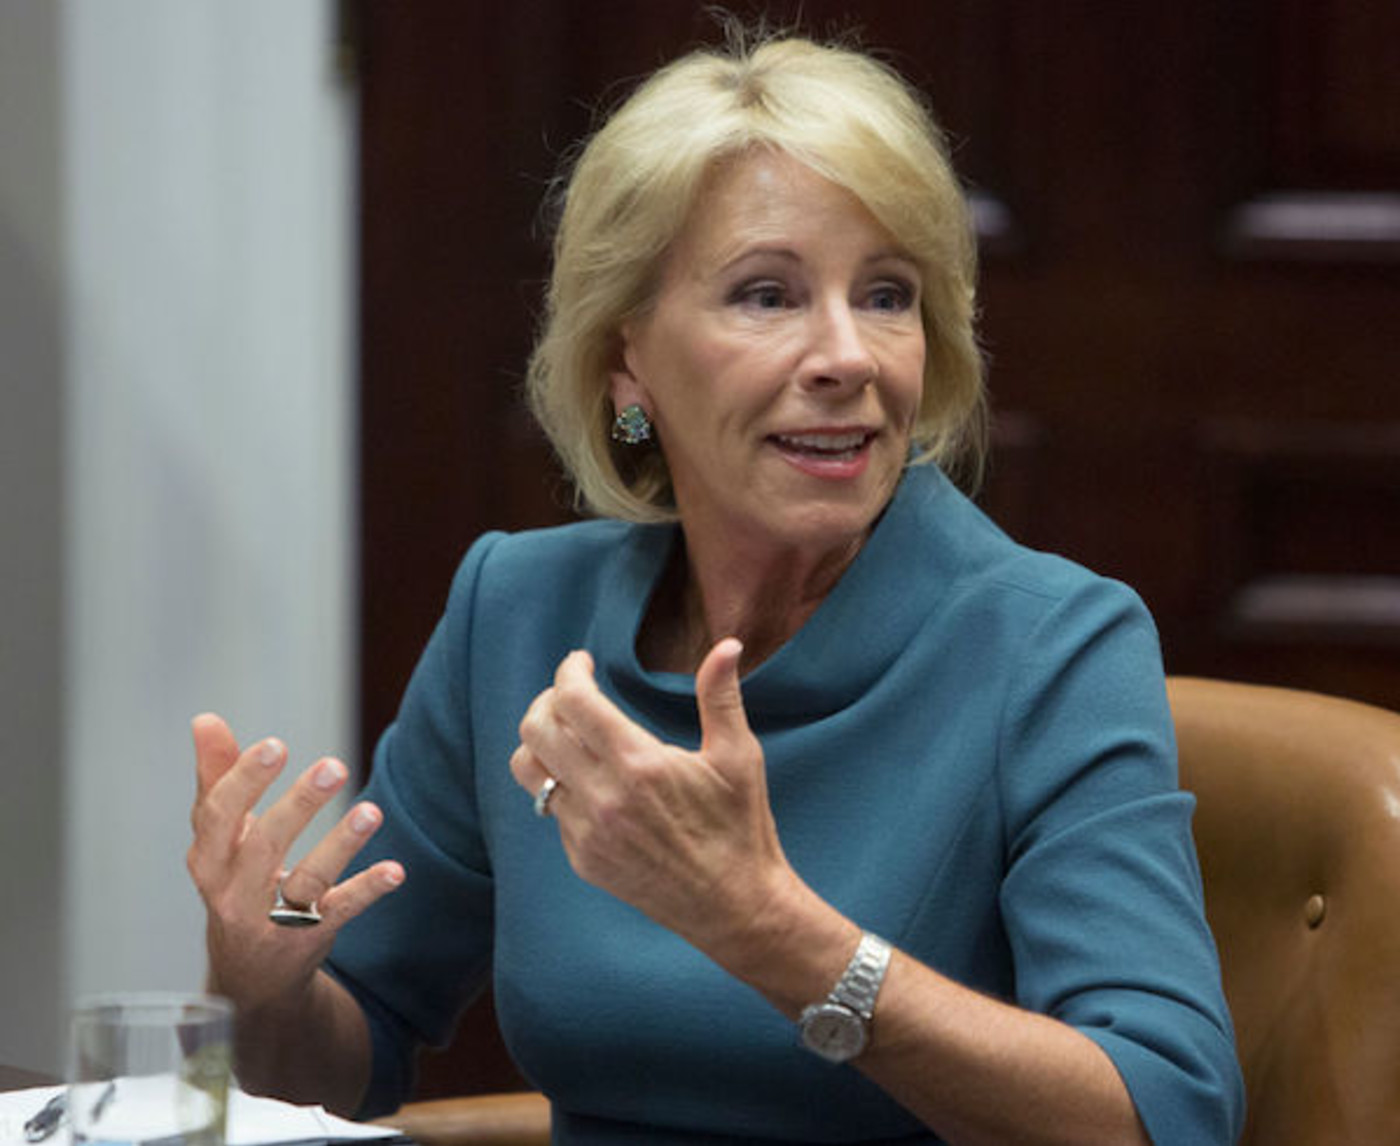 This is a picture of Betsy DeVos.